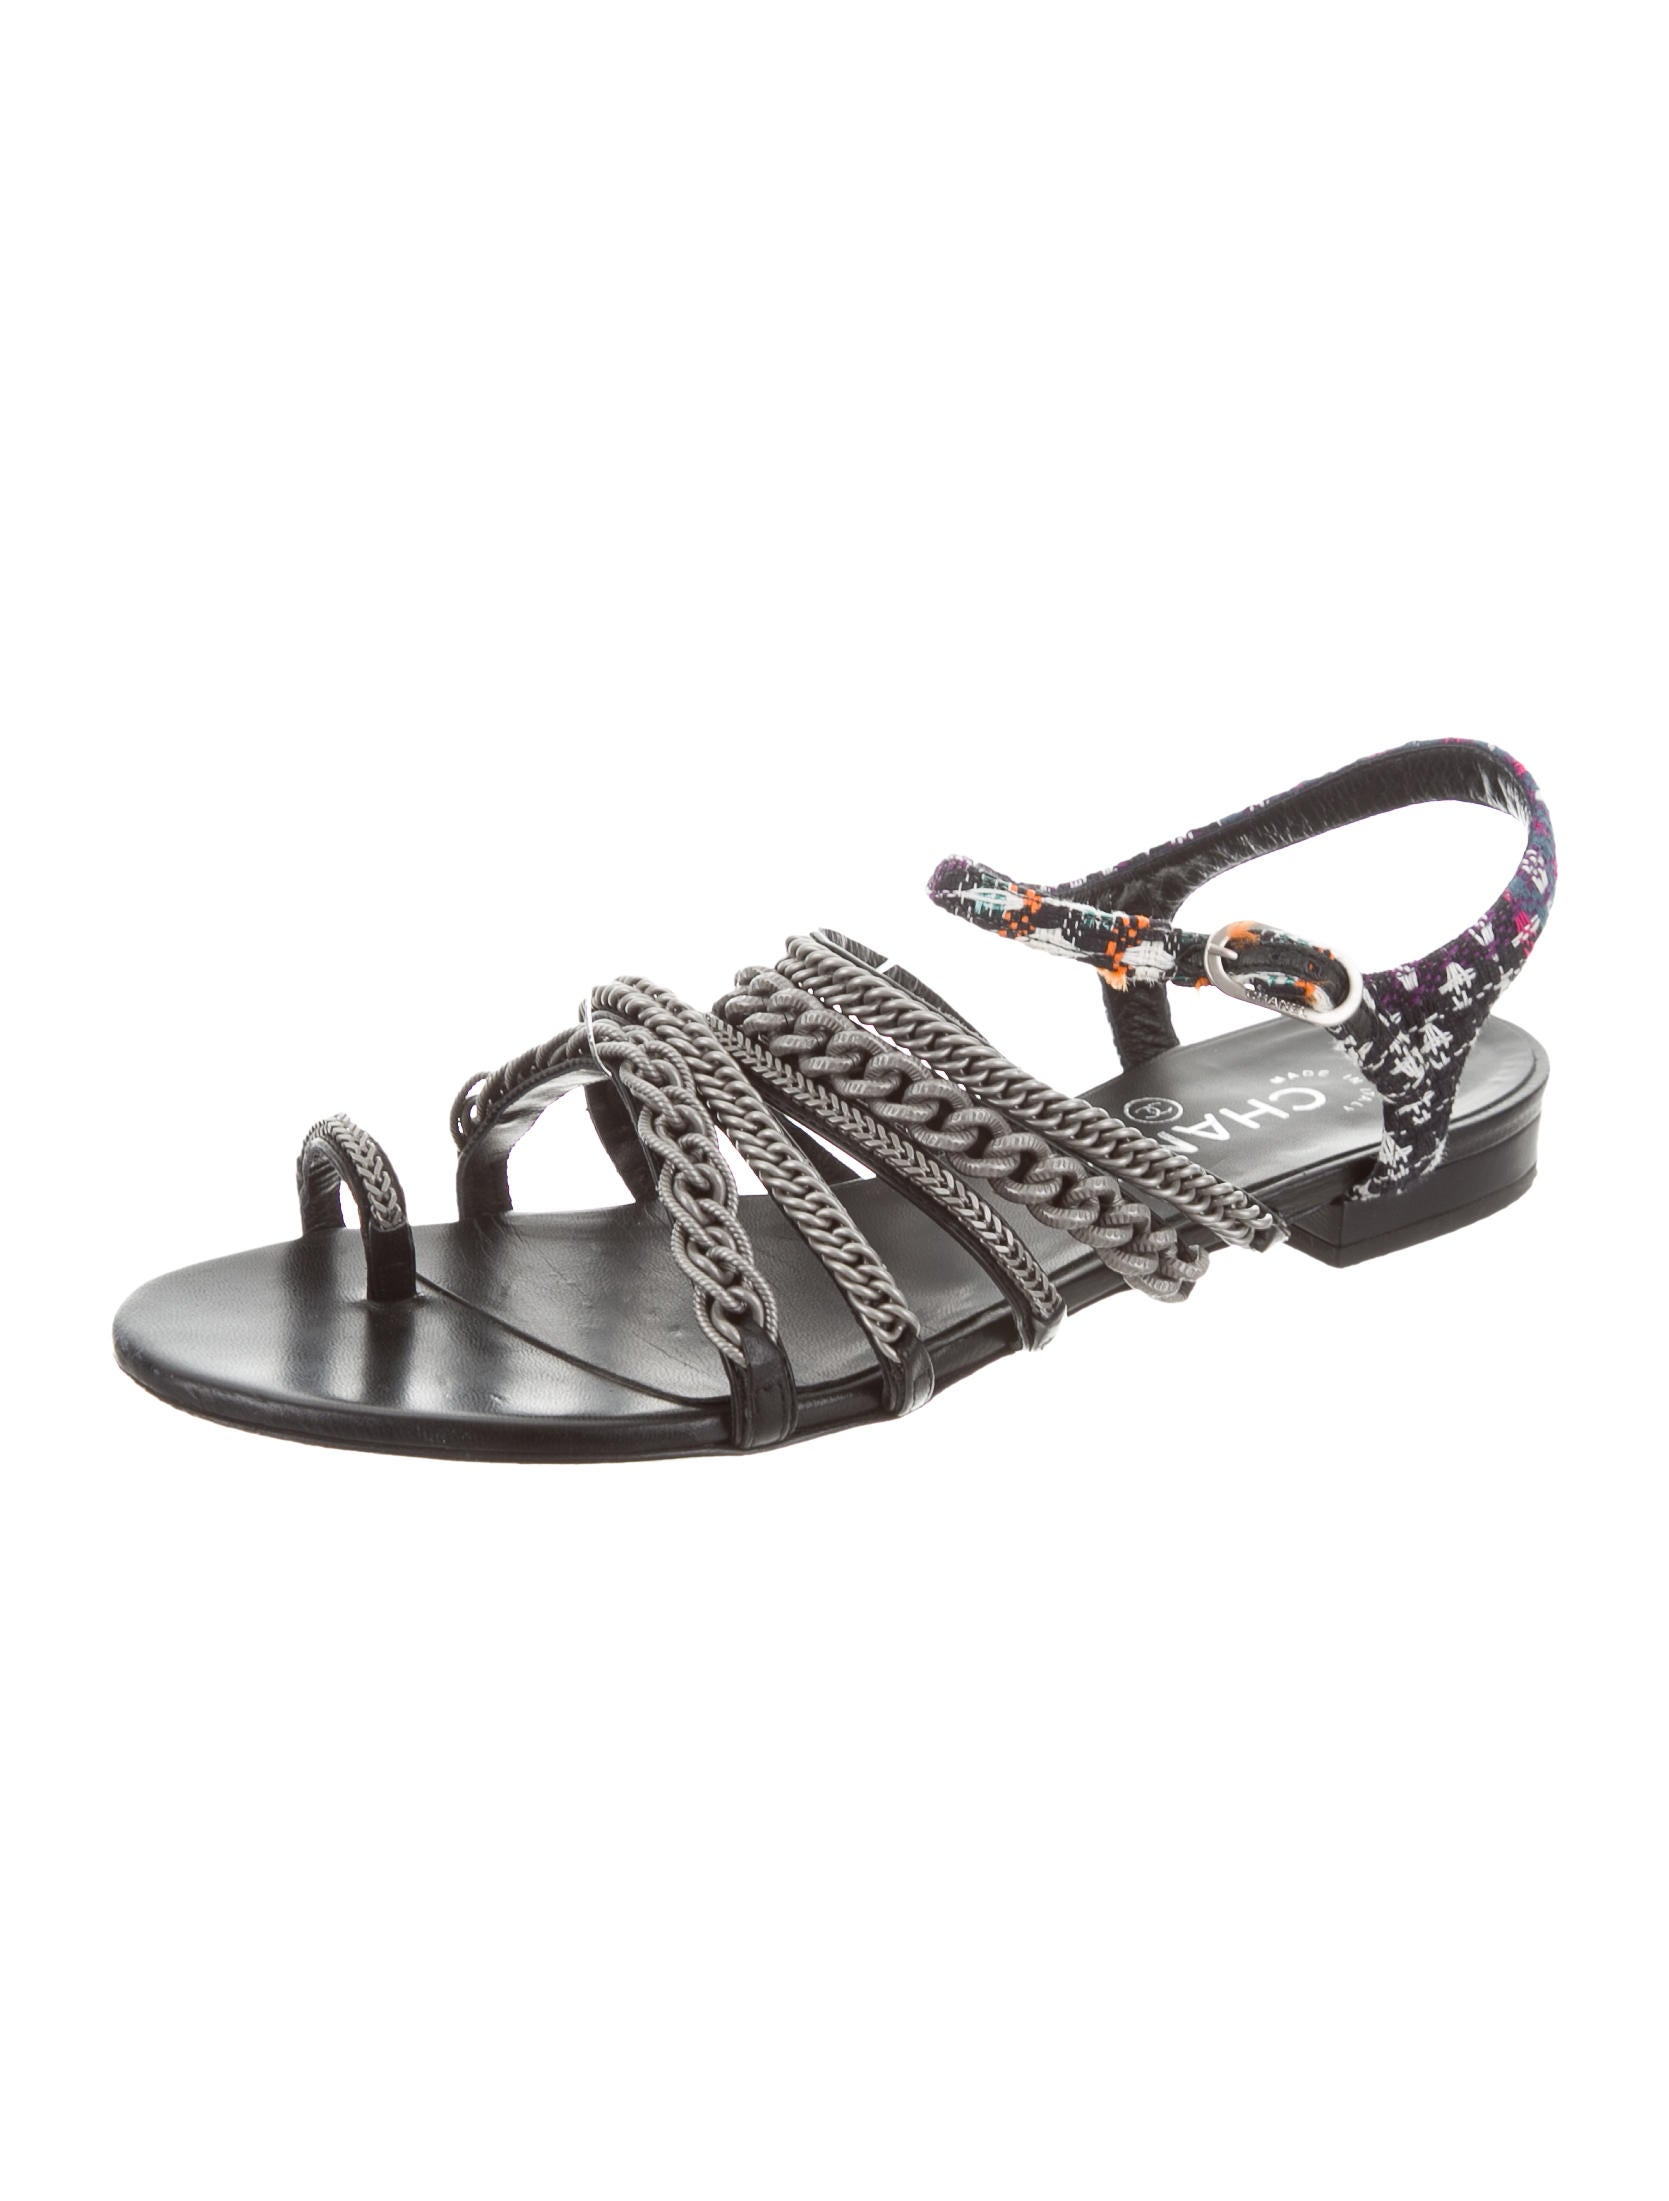 dfa80ed289c190 Chanel 2015 Tweed Chain-Link Sandals - Shoes - CHA219687